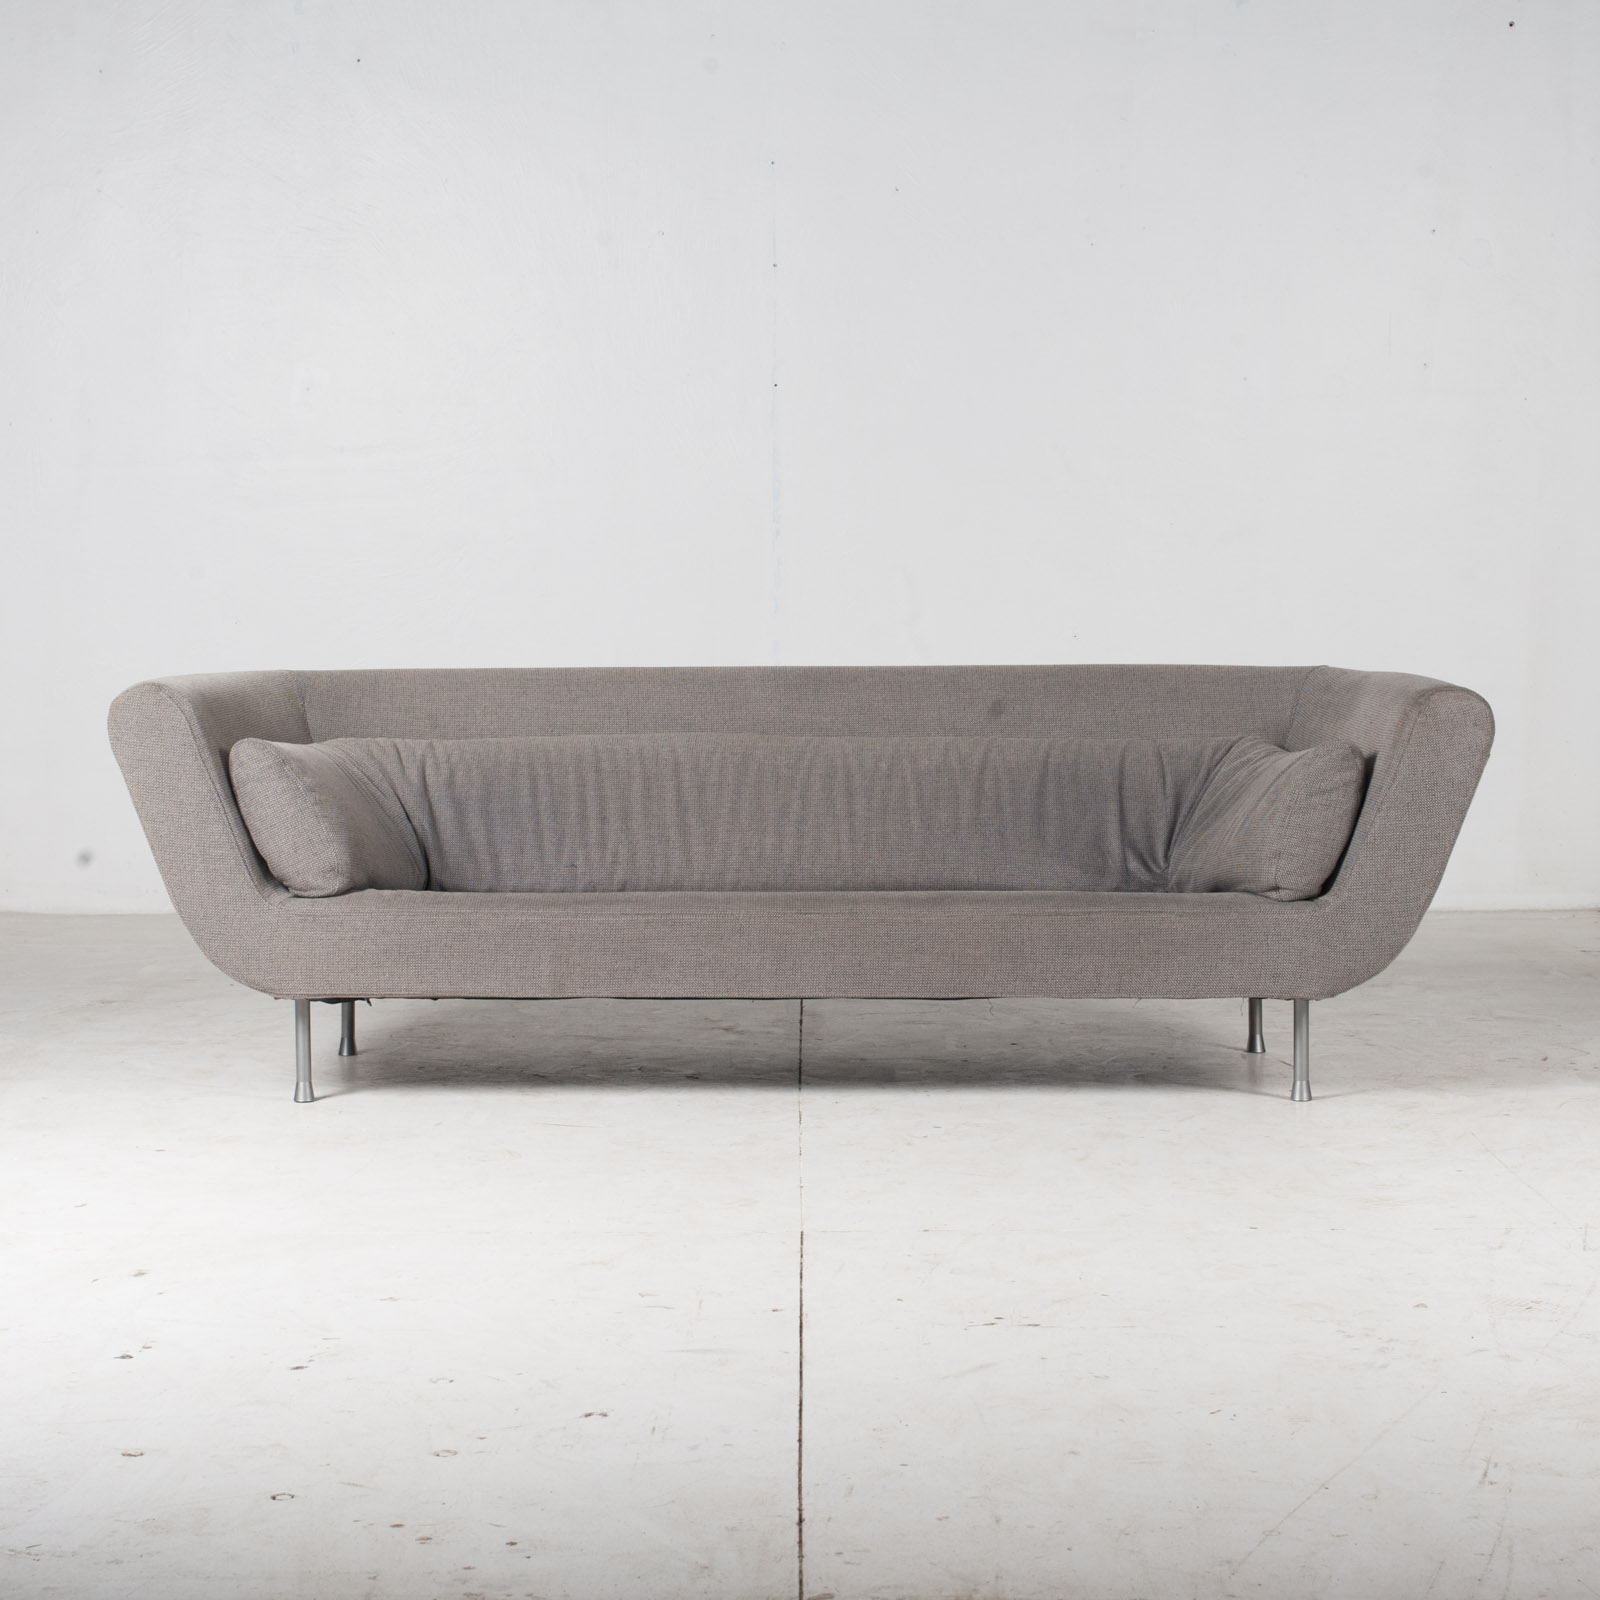 Sofa From The Yang Series By Francois Bauchet For Ligne Roset, 2002, France1